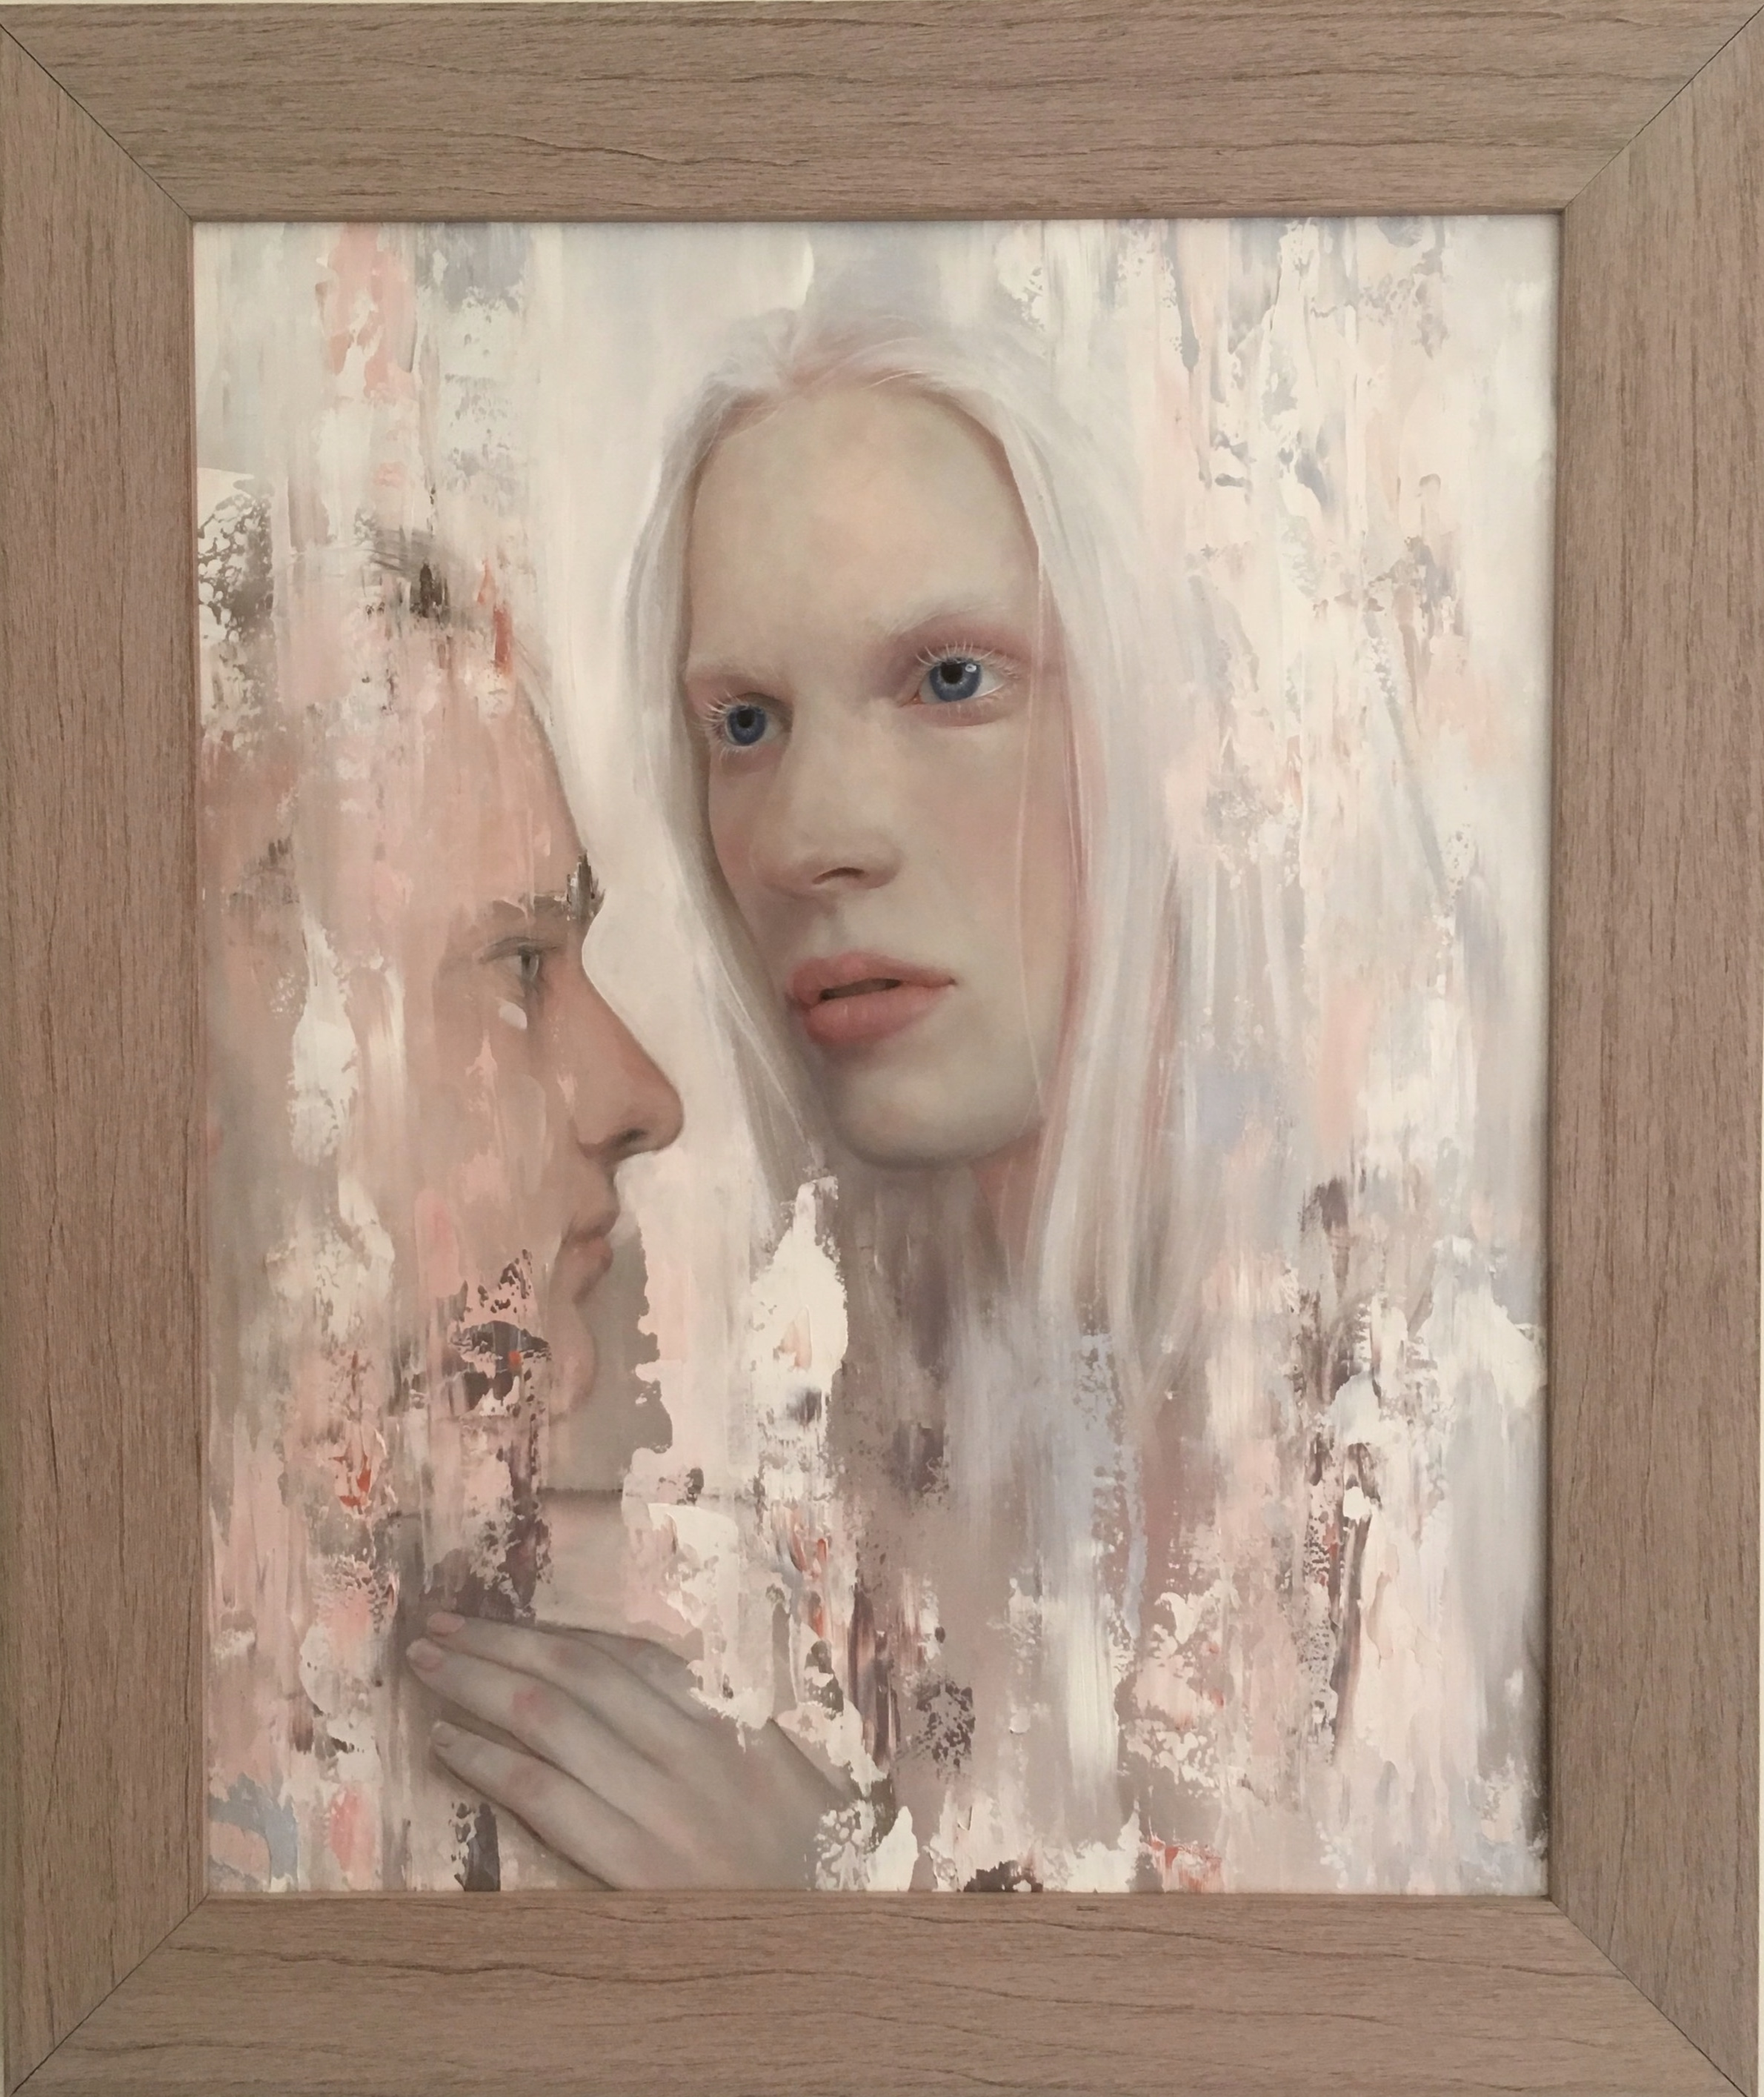 Loveloss Series - Salvation 2018  oil on board  500 x 400mm (590 x 490mm framed size)  NZ$2800  enquiries to:  michelle@theartistsroom.co.nz